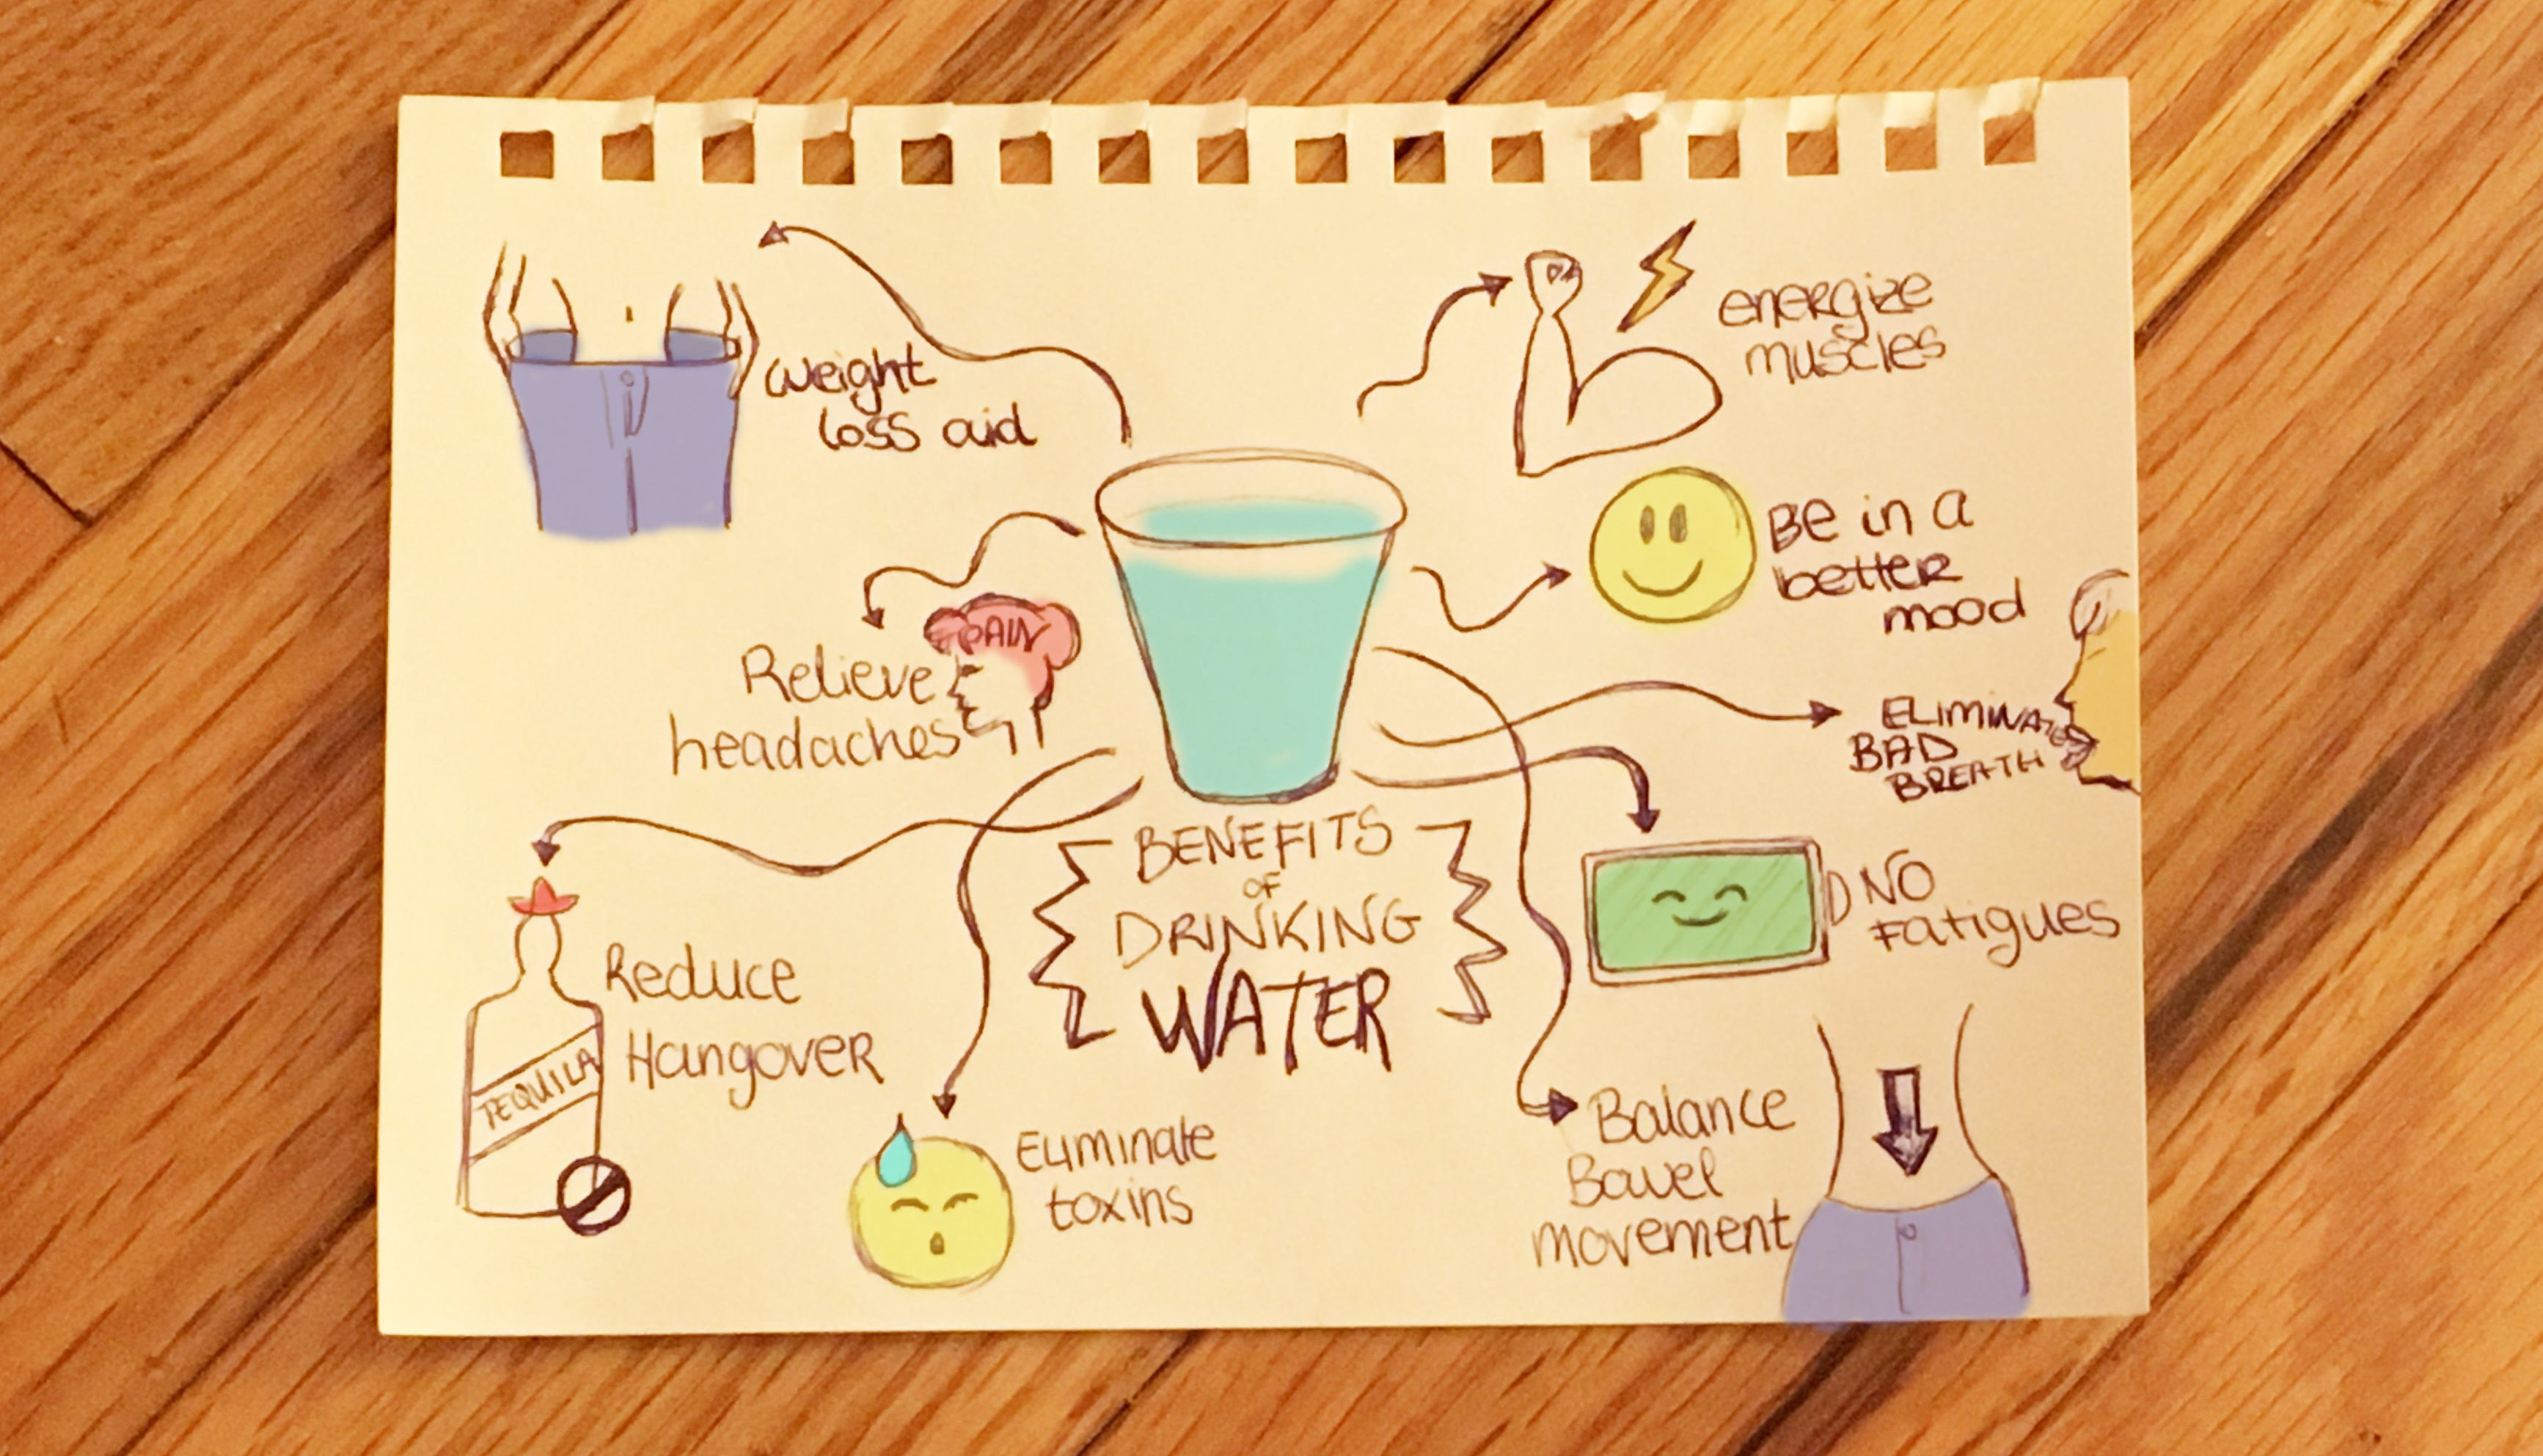 Benefits from drinking water